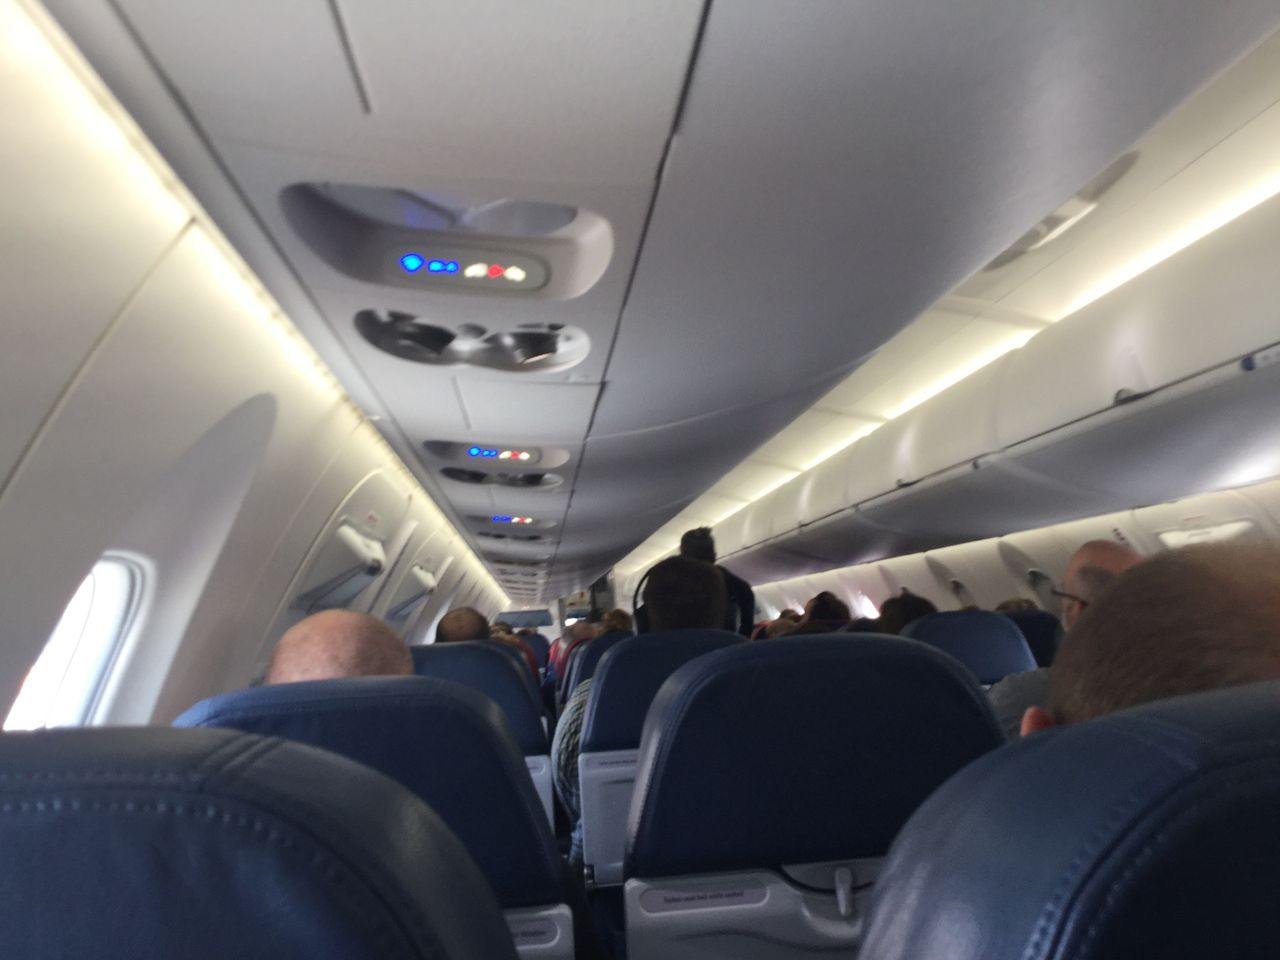 Review Of Delta Endeavor Air Flight From Des Moines To - My flight to des moines